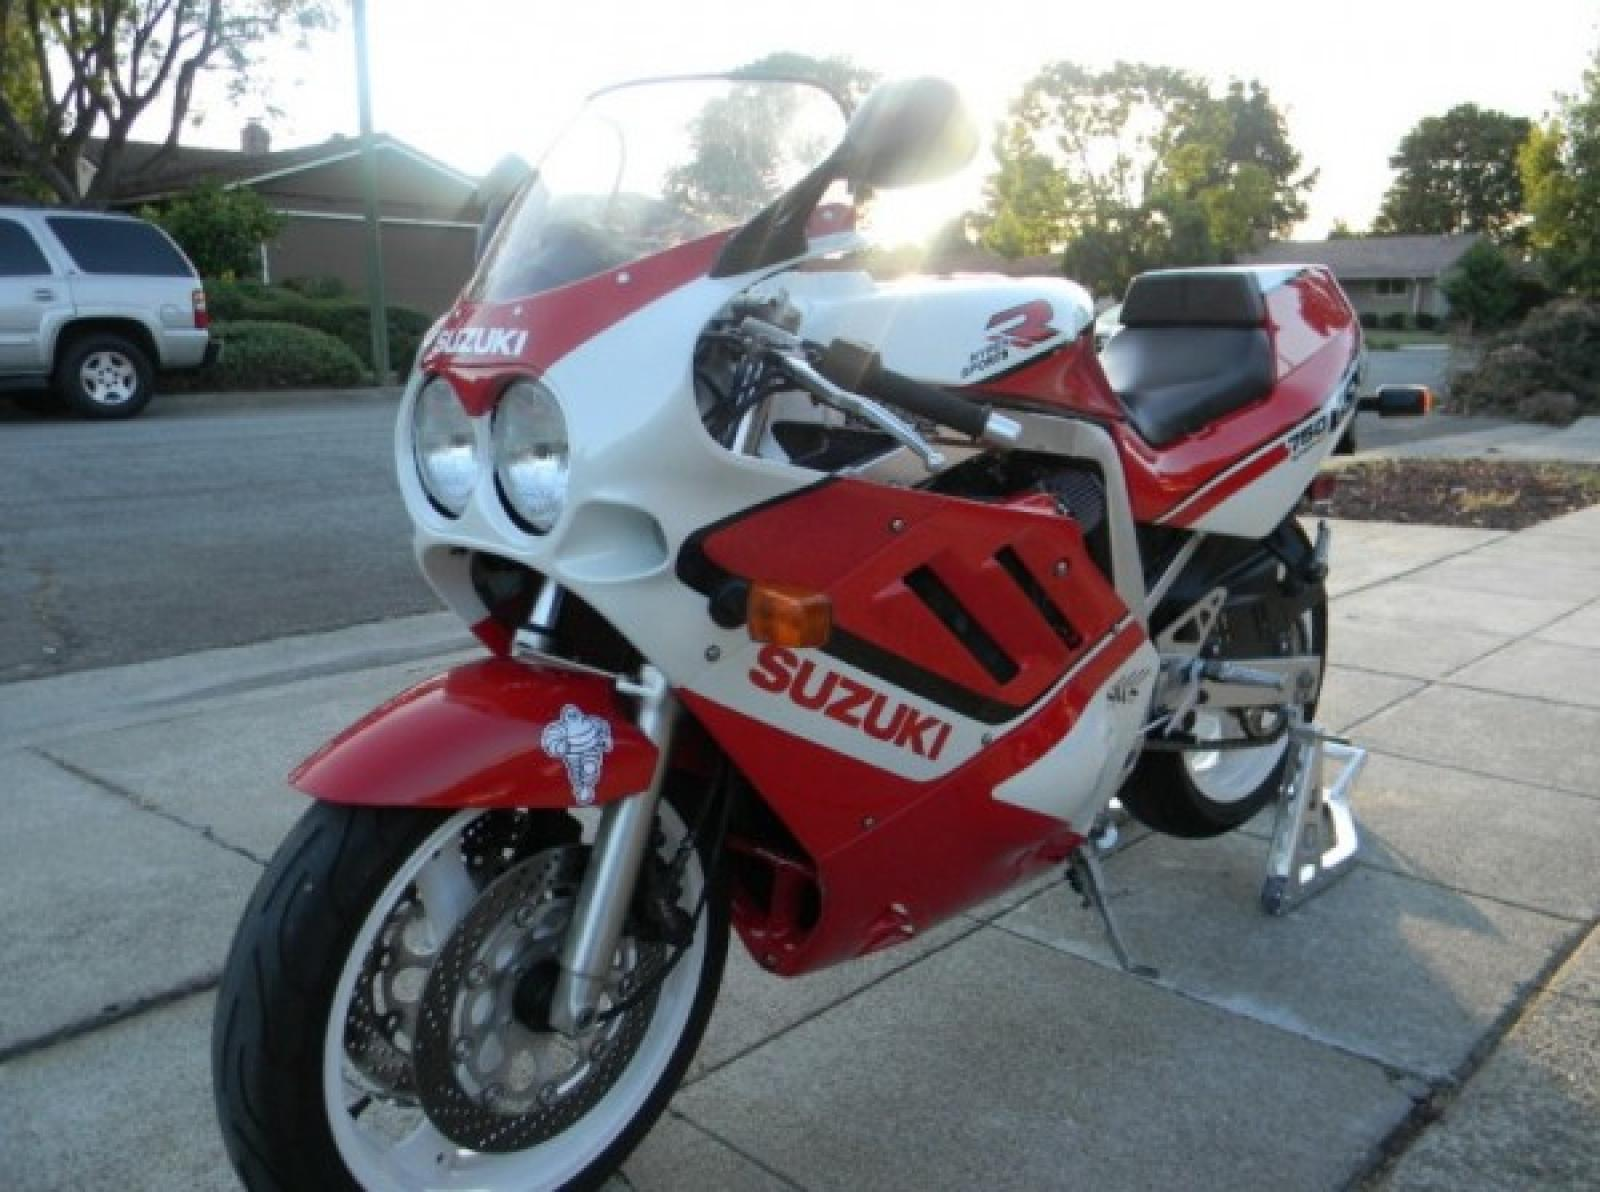 1988 Suzuki GSX-R 750 (reduced effect) #1